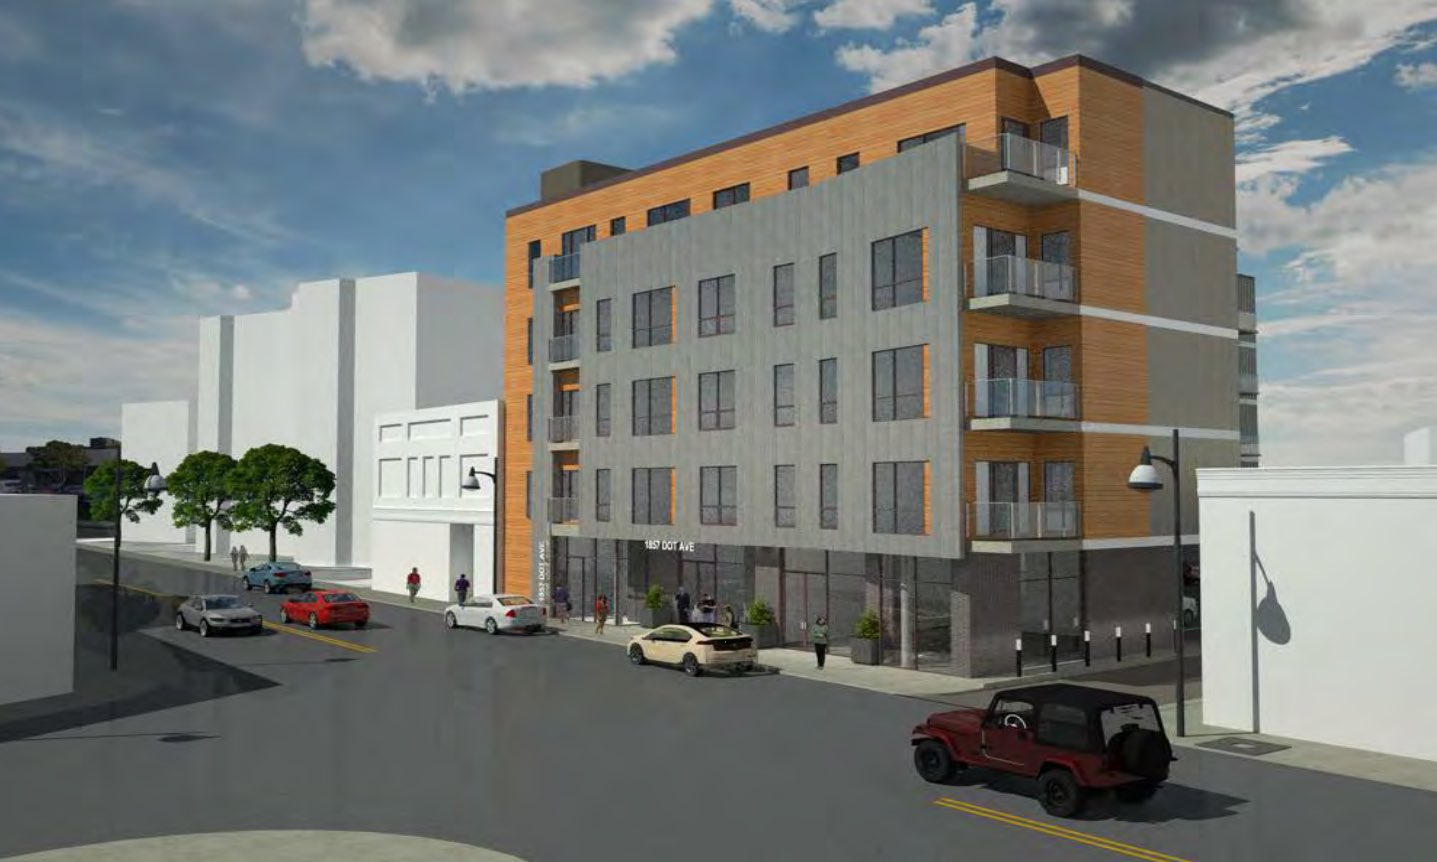 1857 1859 dorchester avenue ashmont peabody square proposed residential apartment retail development